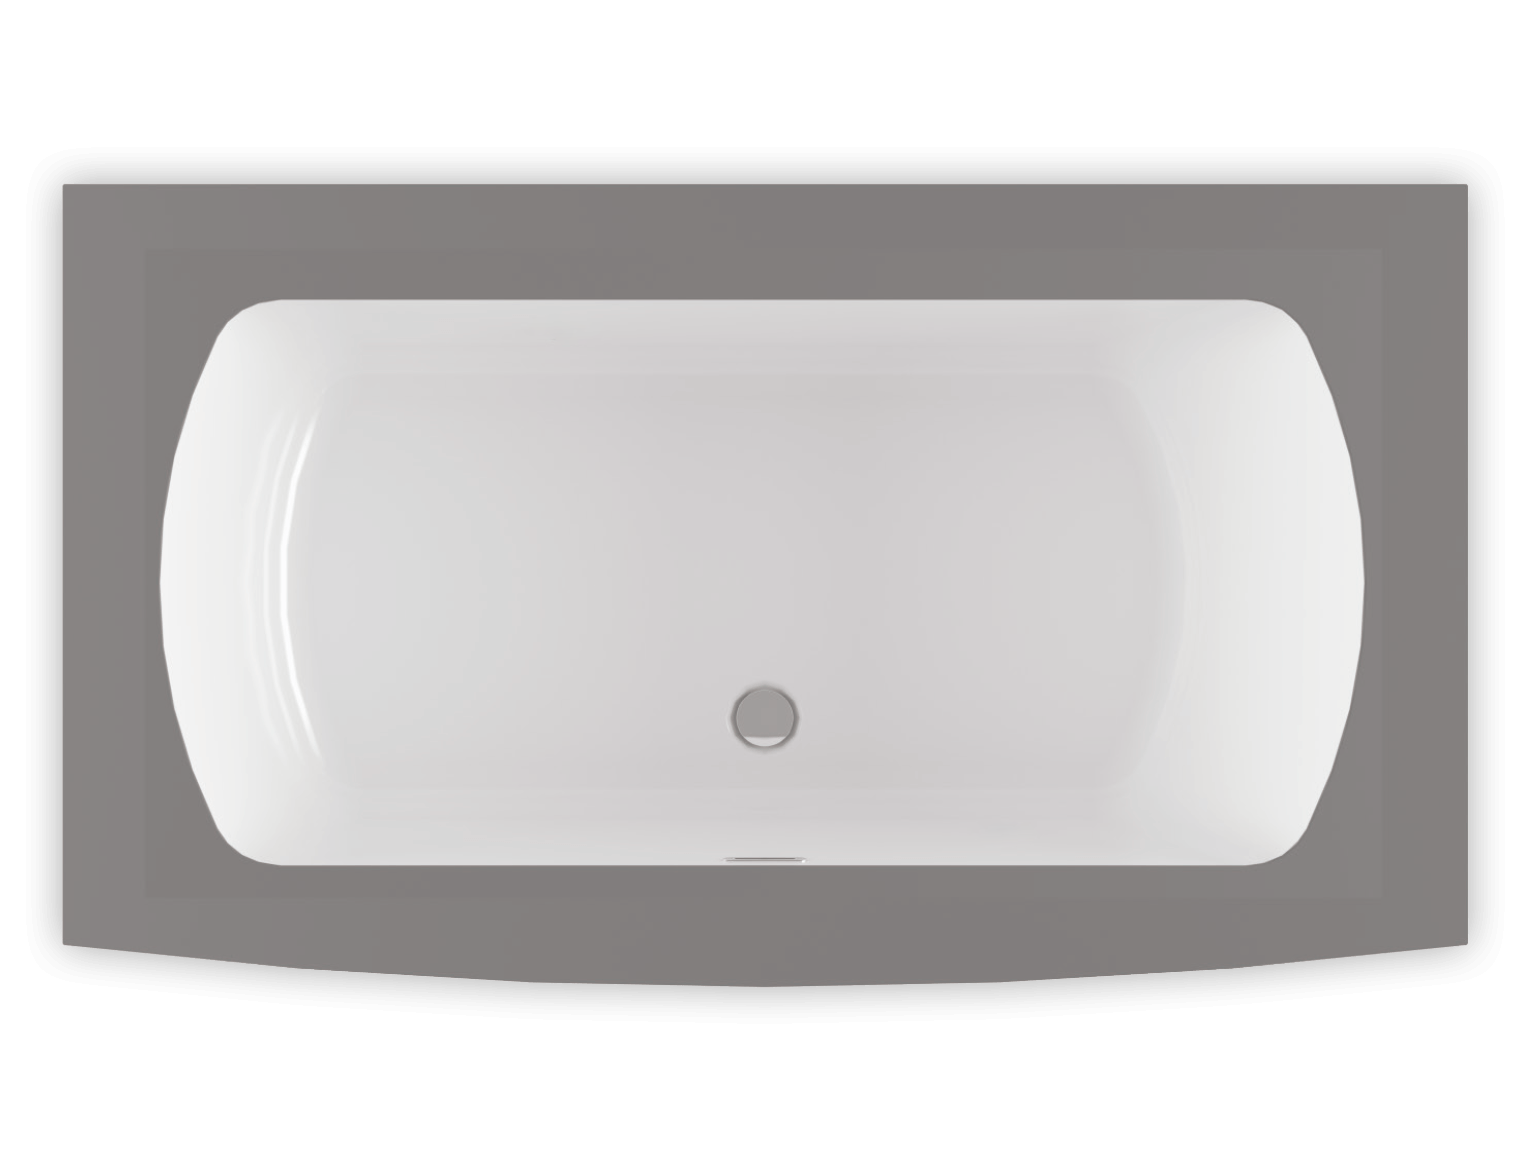 Monarch 7238F air jet bathtub for your modern bathroom